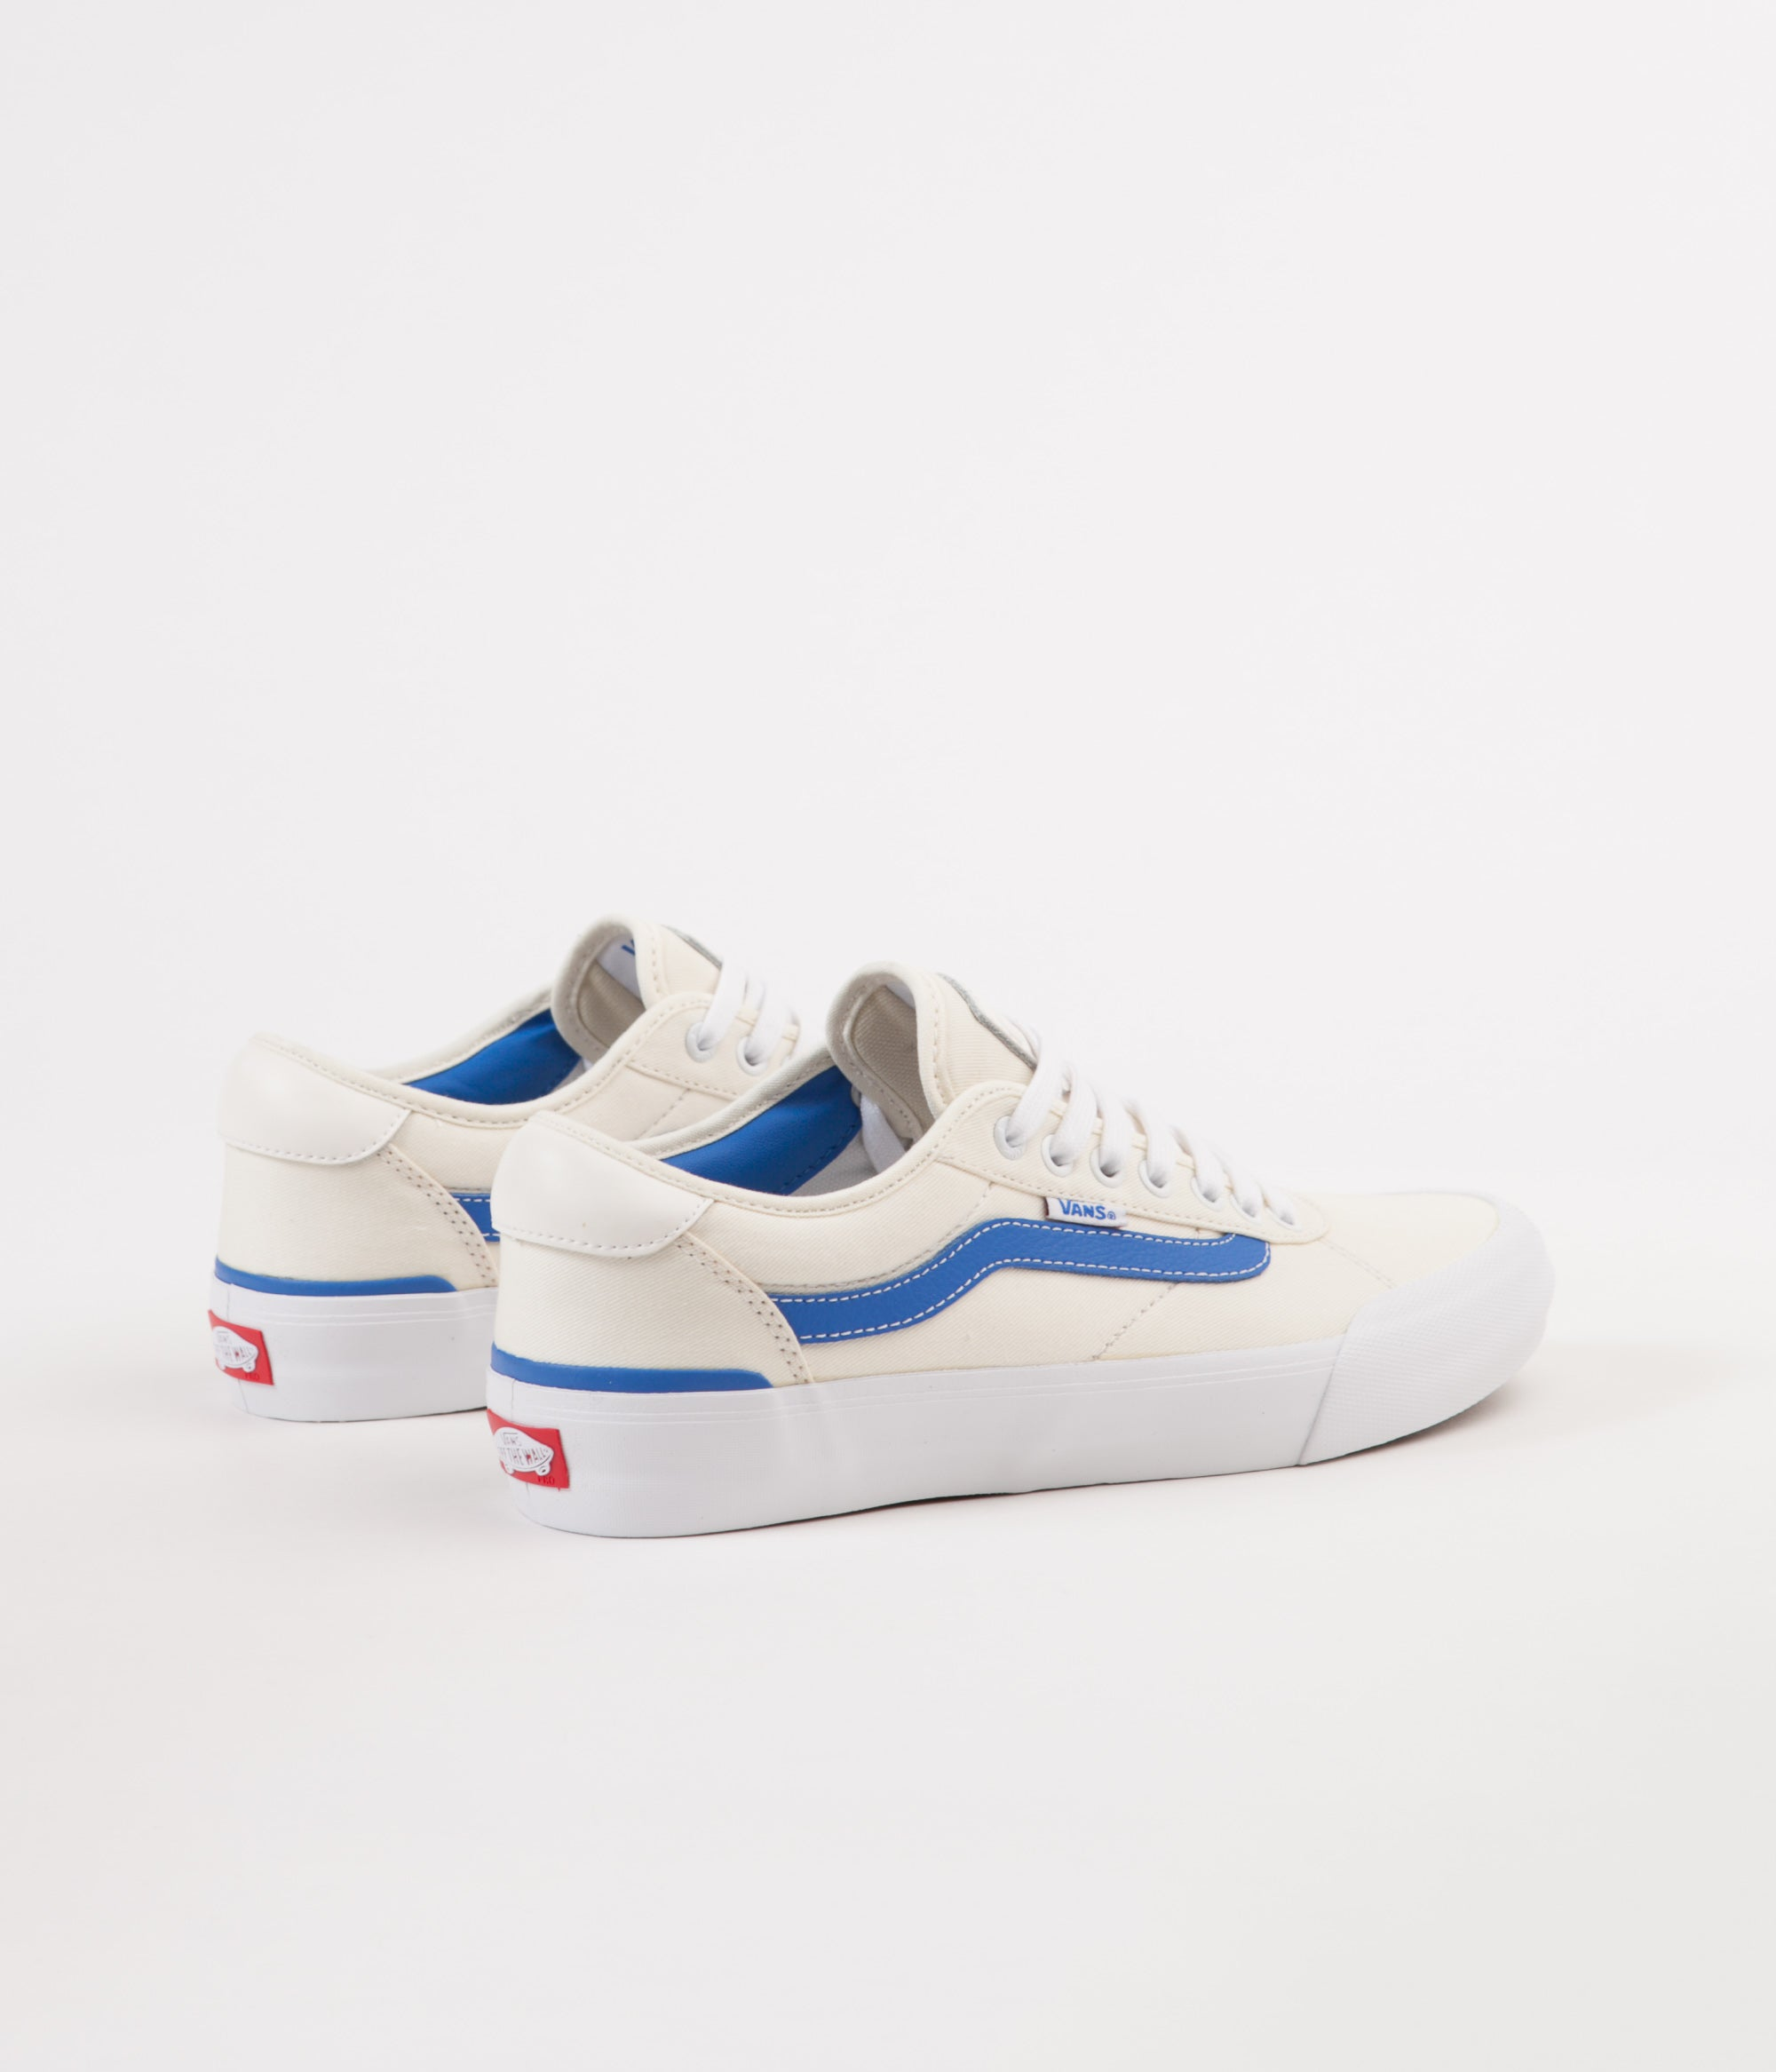 ad2ca87d224b19 ... Vans Chima Pro Centre Court Shoes - Classic White   Victoria Blue ...